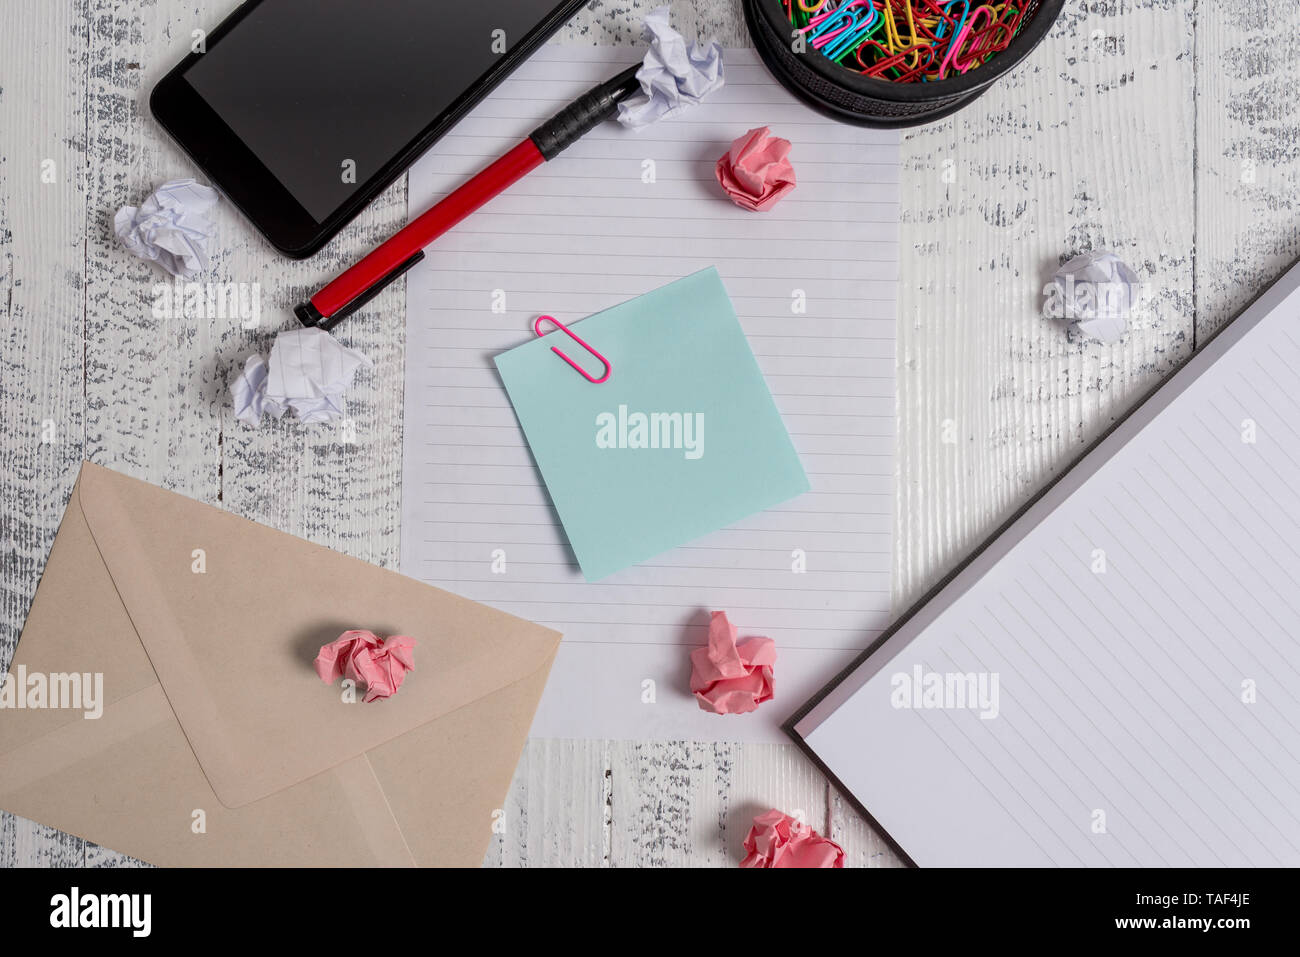 Smartphone sheet clips pen notebook paper balls envelope note wooden back - Stock Image